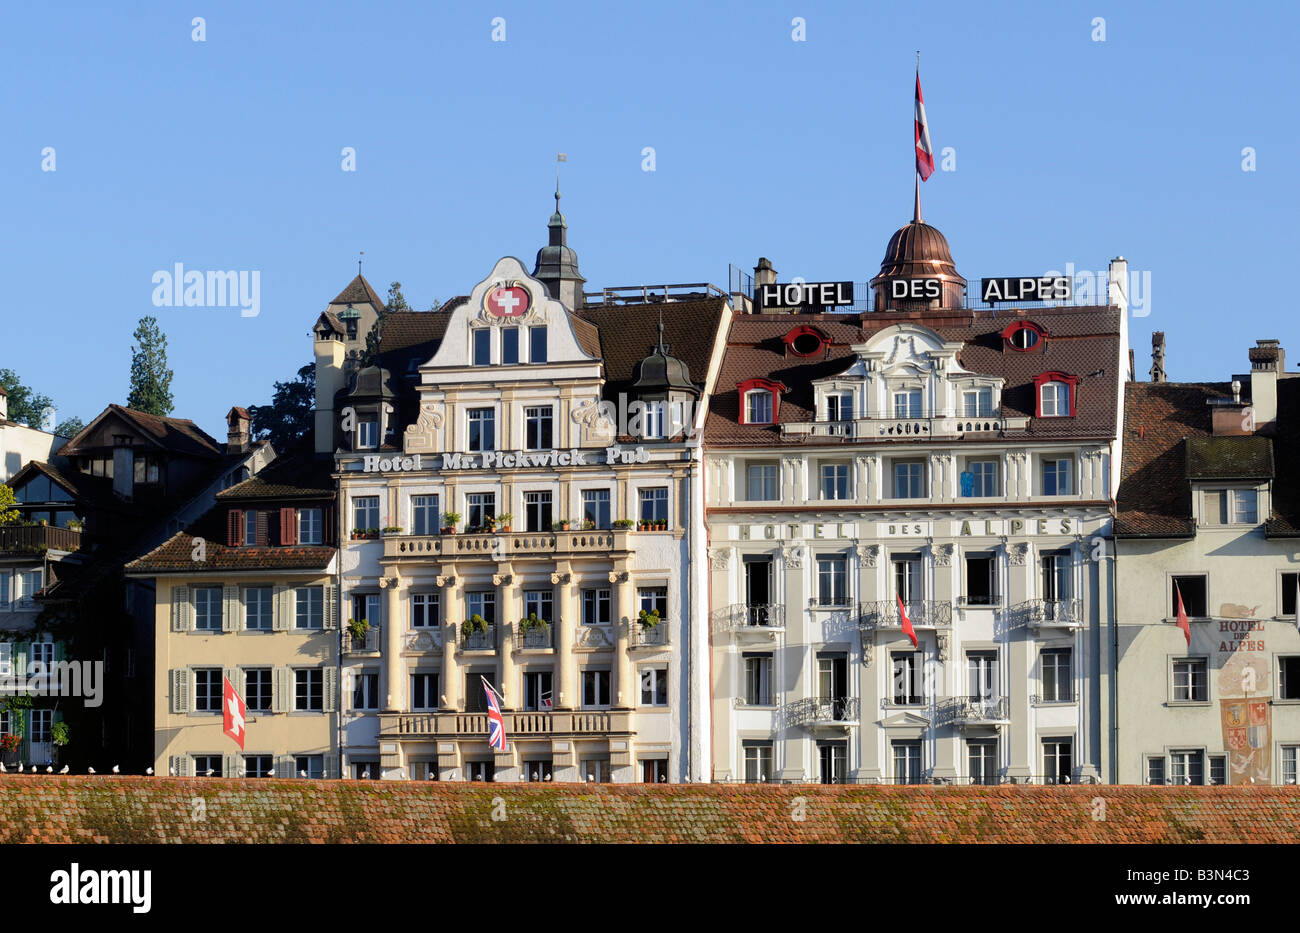 Luxury Hotels With Traditional Swiss Architecture In Lucerne Switzerland